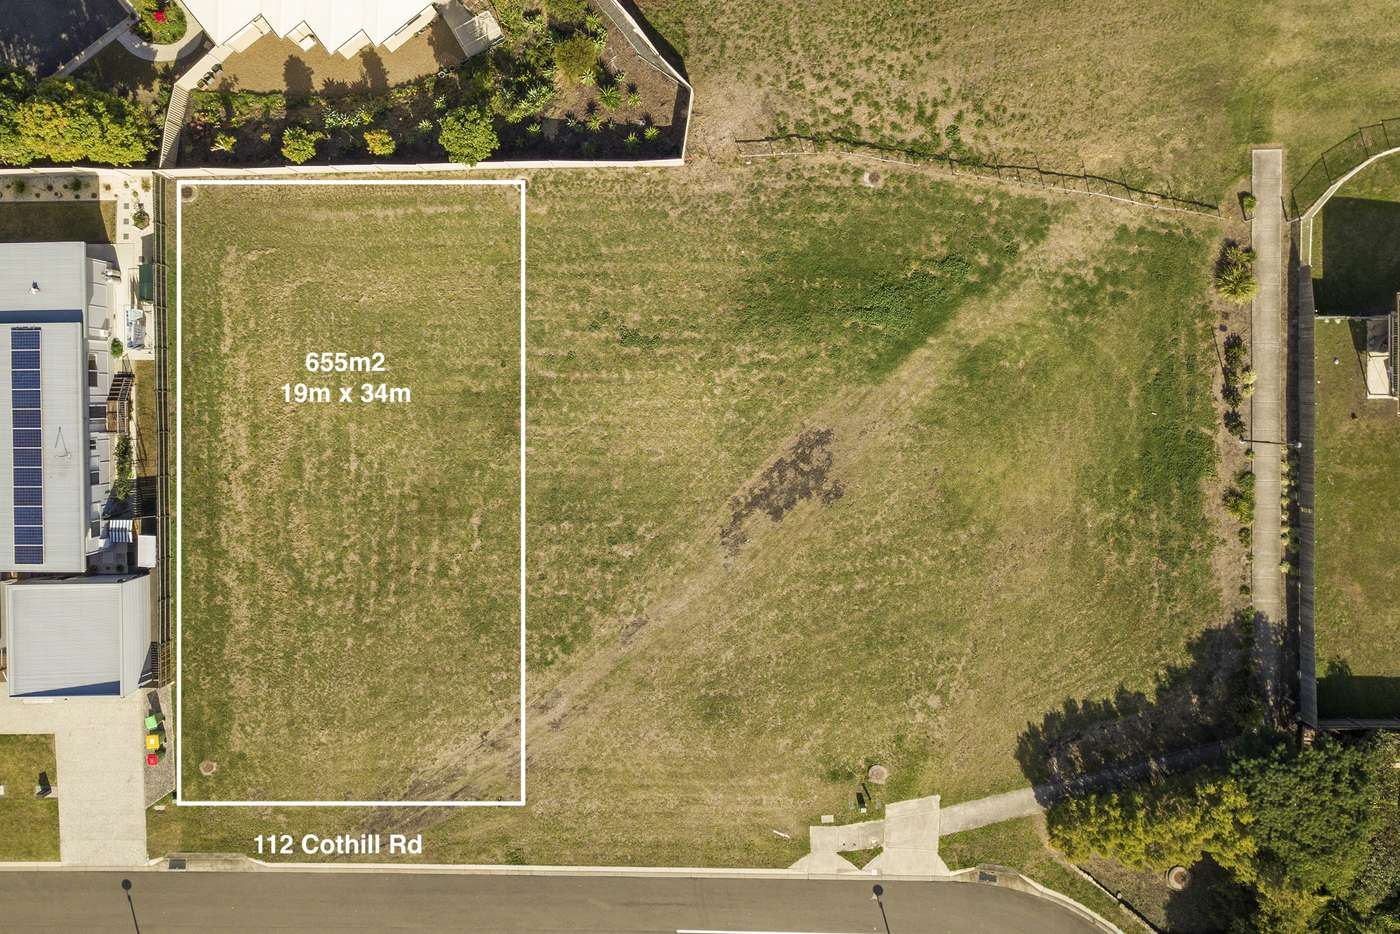 Main view of Homely residentialLand listing, 112 Cothill Rd, Silkstone QLD 4304